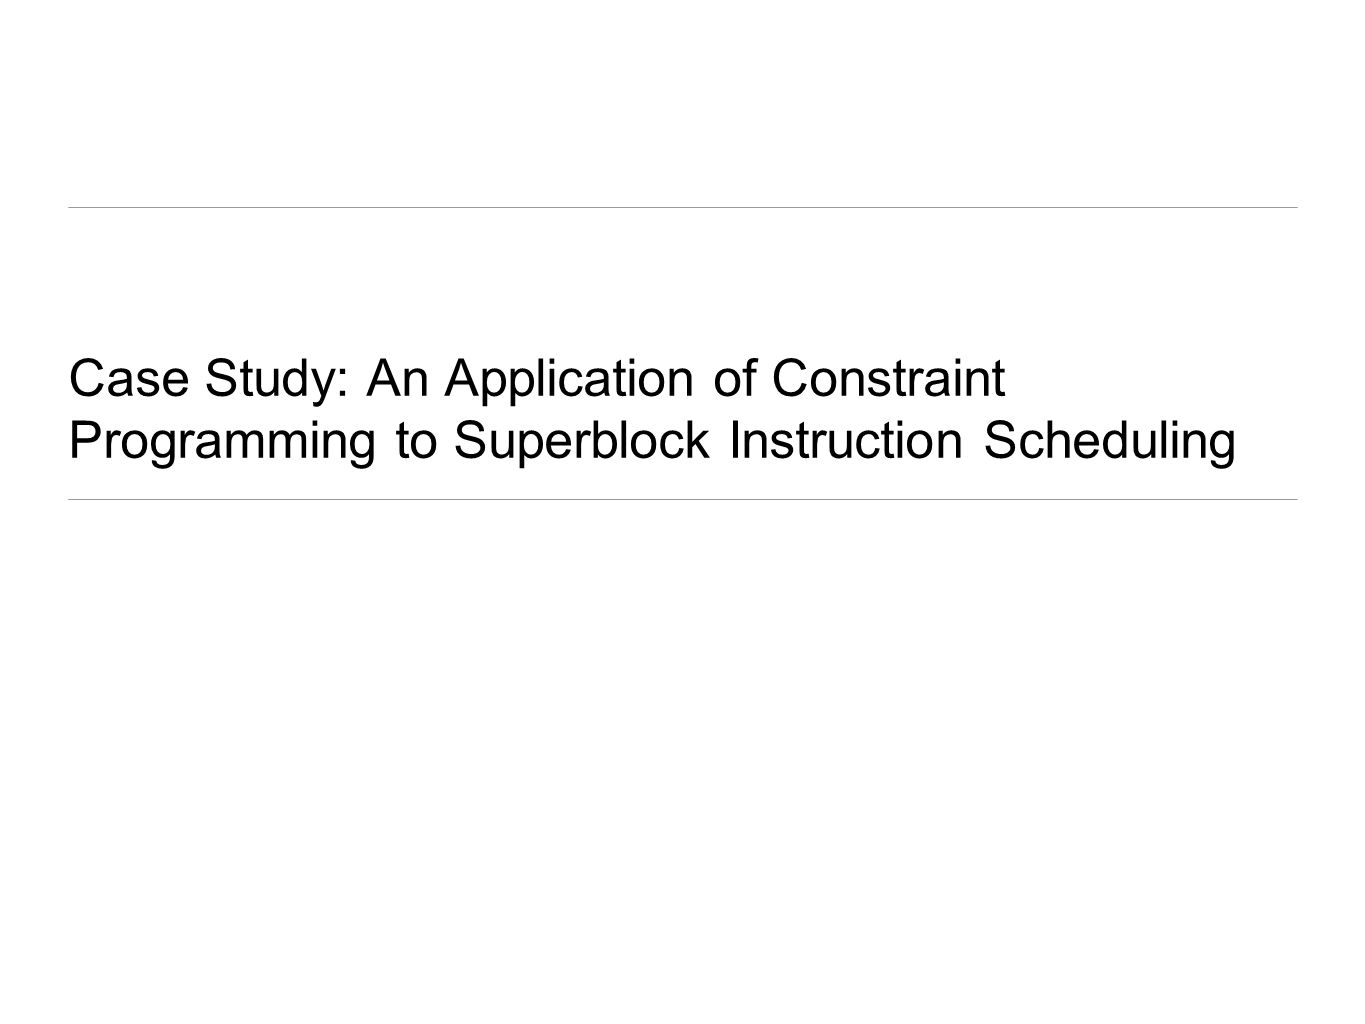 Case Study: An Application of Constraint Programming to Superblock Instruction Scheduling